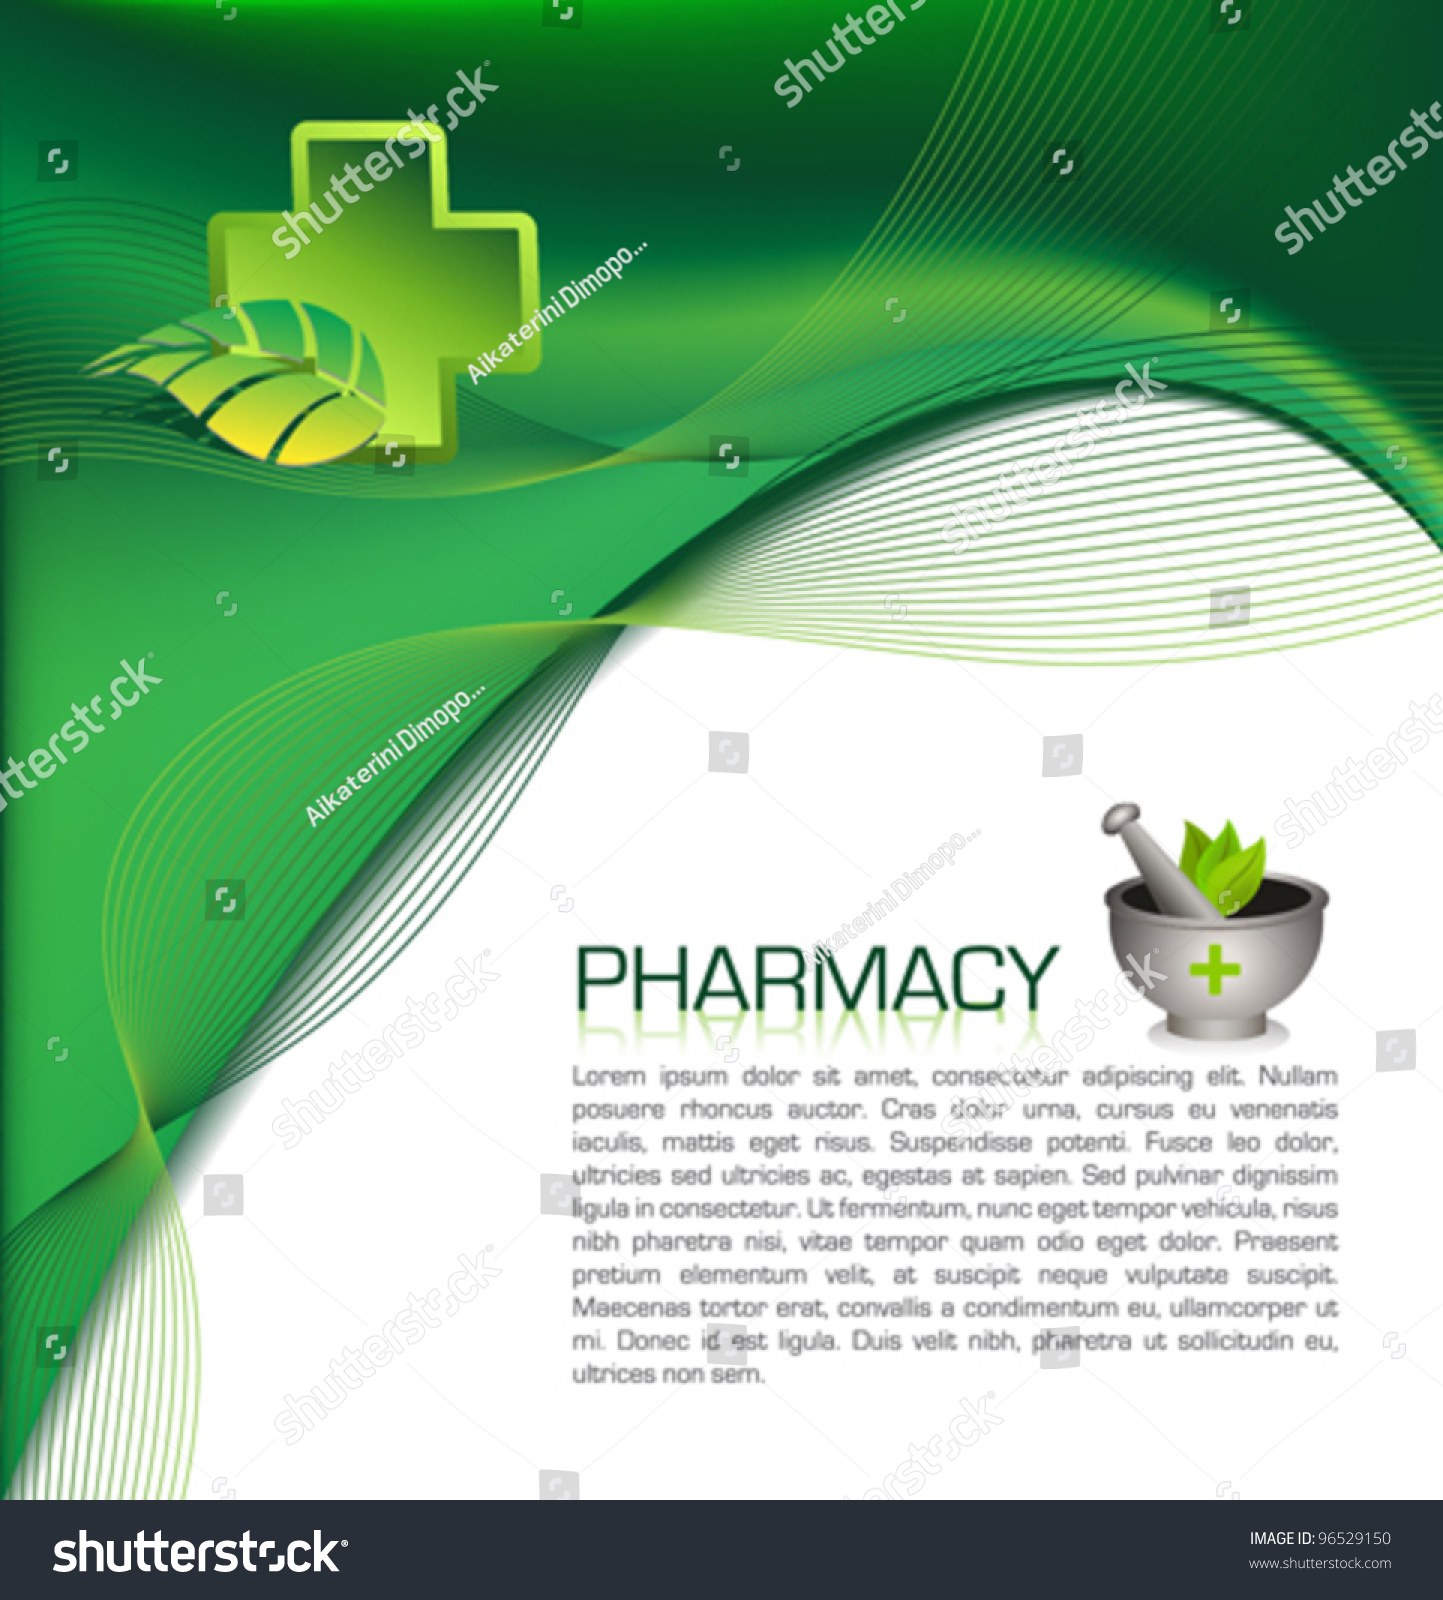 Pharmacy Brochure Template Stock Vector Royalty Free 96529150